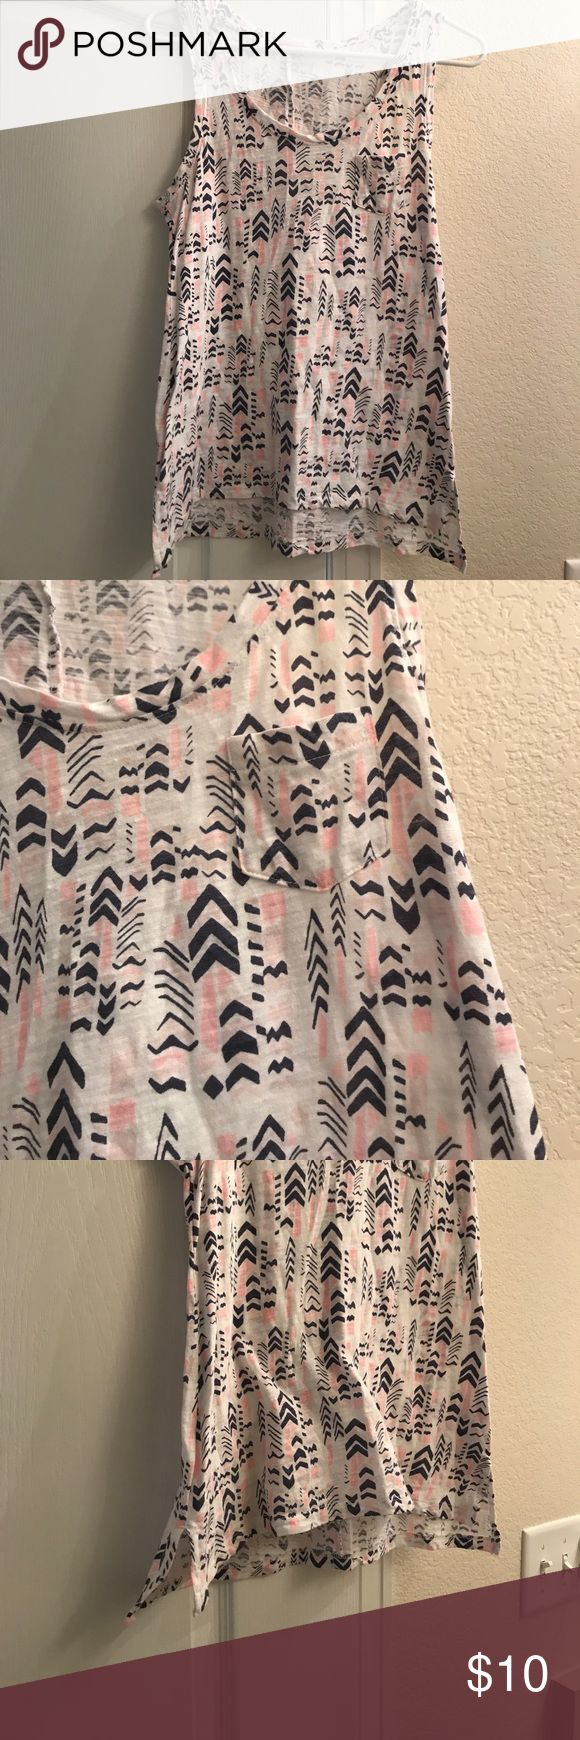 Gap tank top Adorable for summer! Excellent condition. Pink and navy blue. From gap outlet. Size small but runs a little bigger GAP Tops Tank Tops